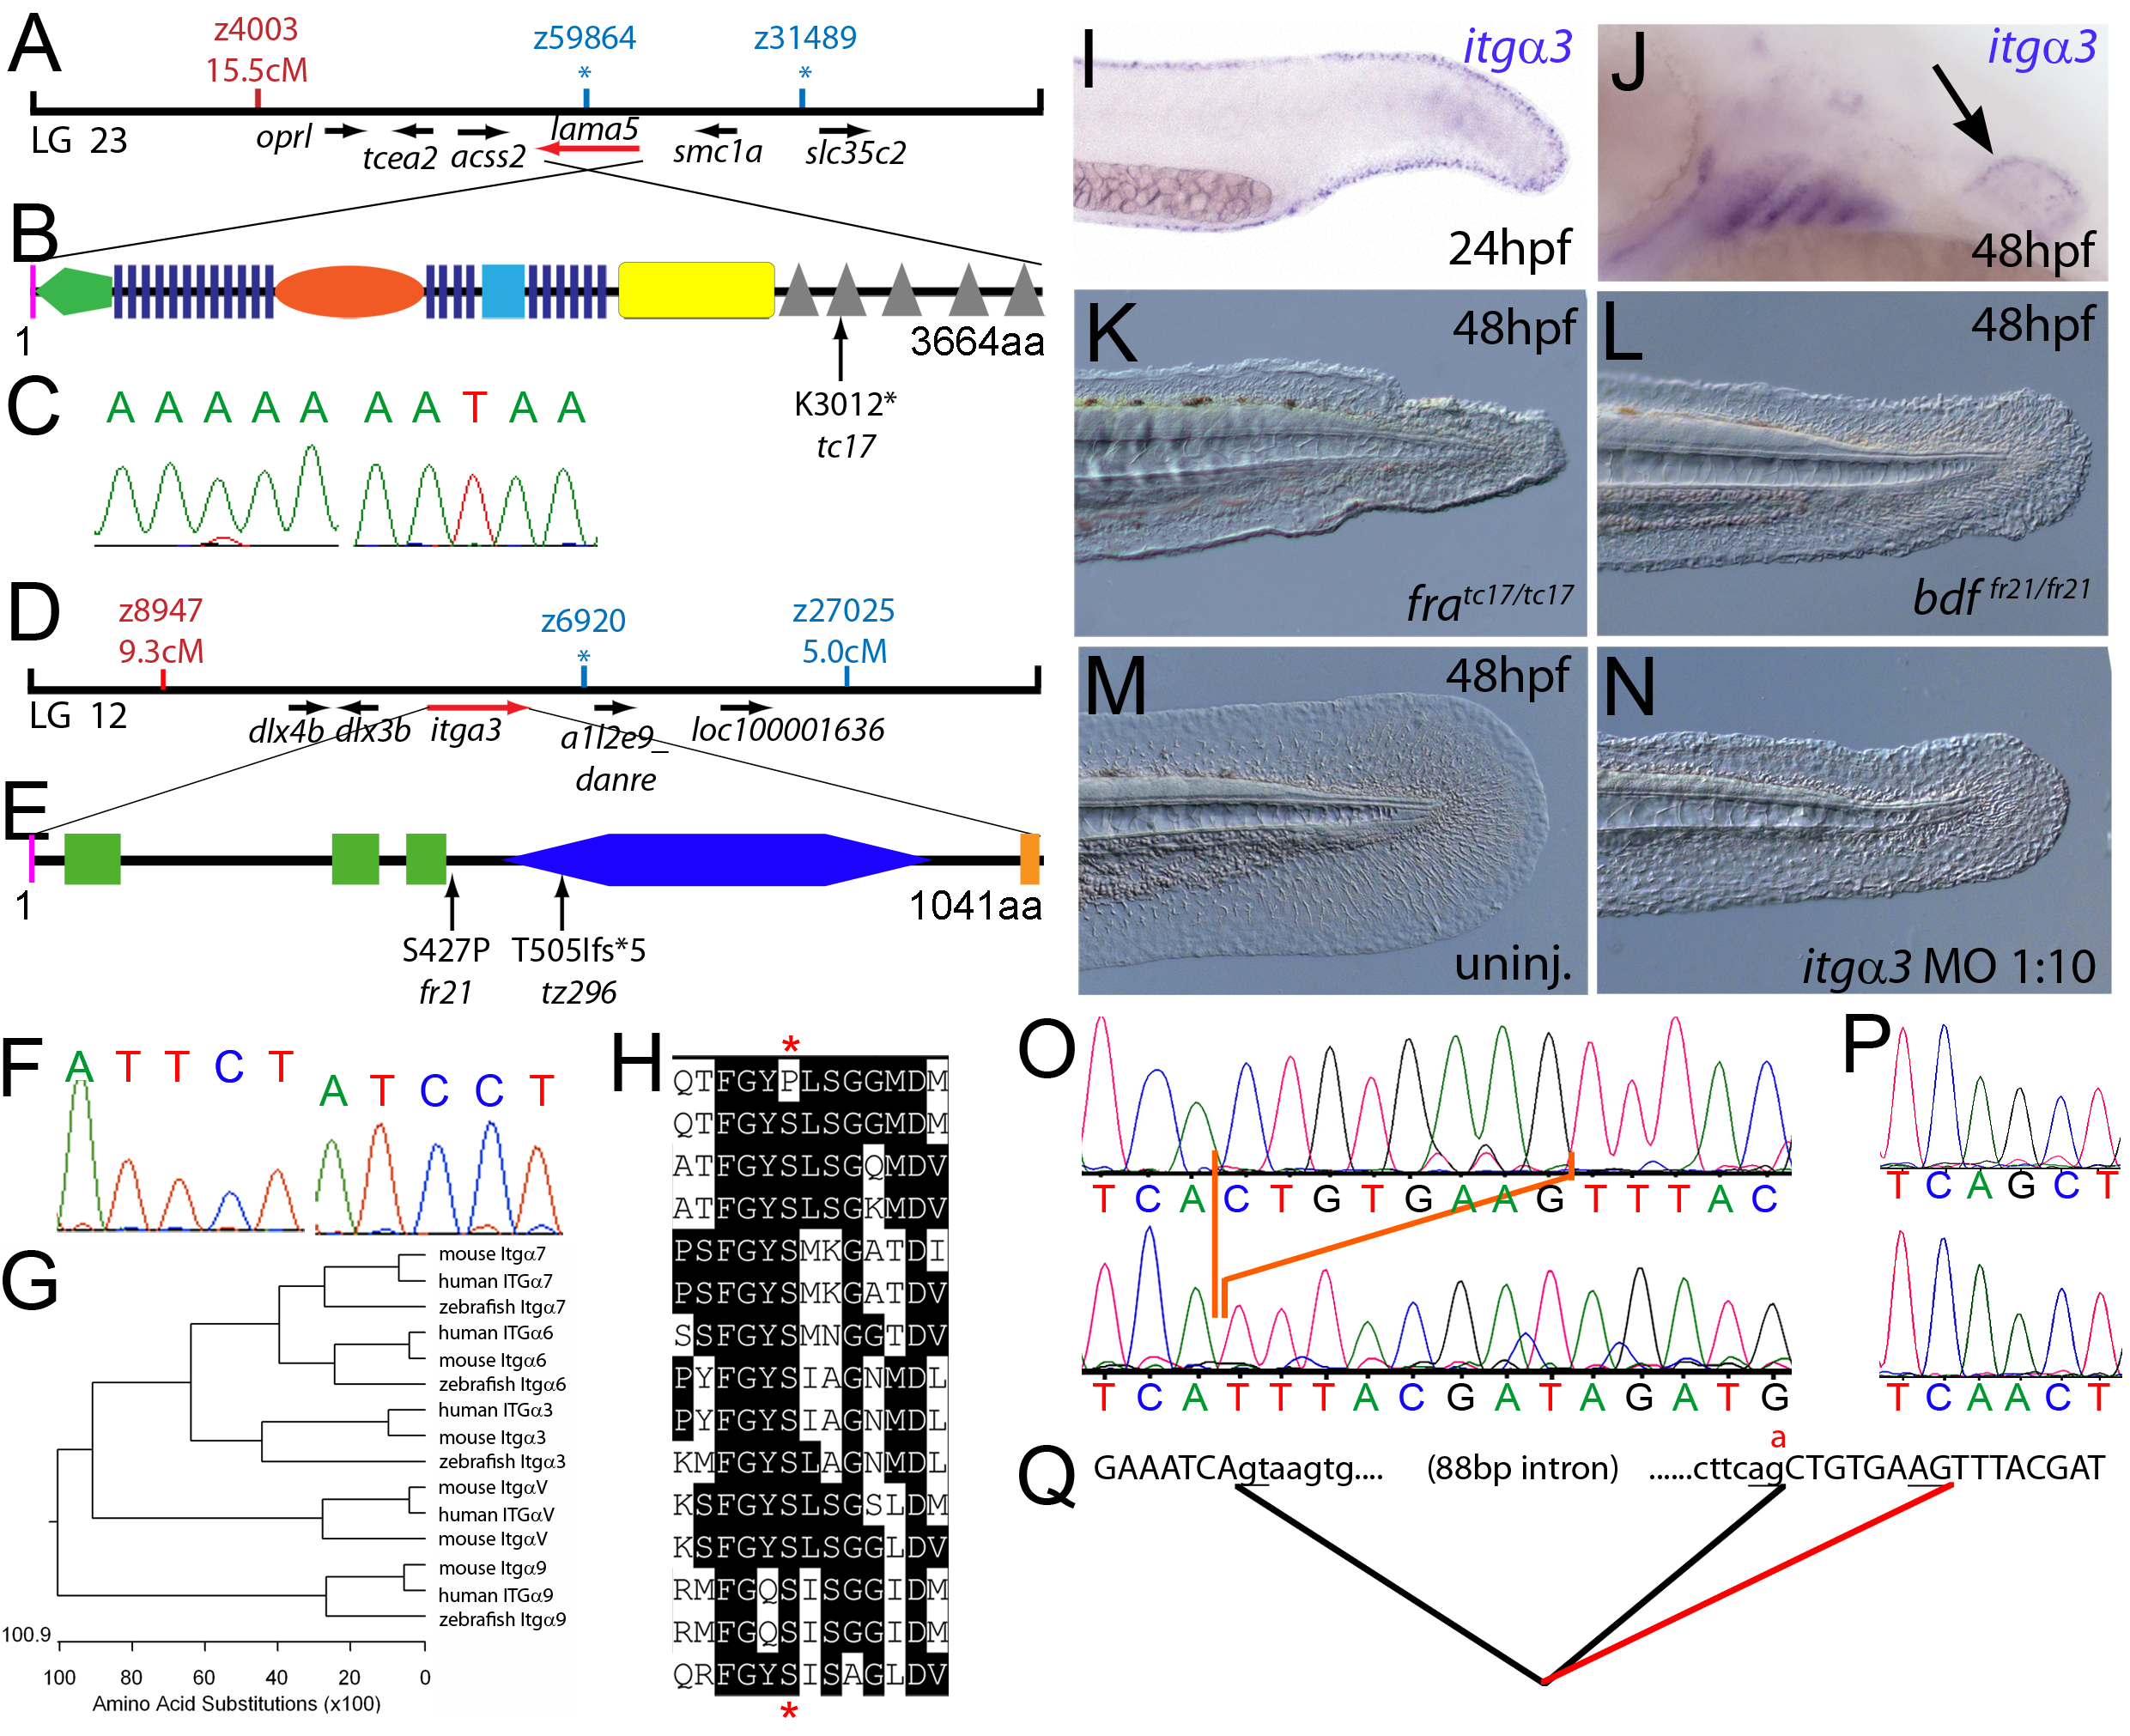 The fin dysmorphogenesis of <i>fransen</i> and <i>badfin</i> mutants are caused by mutations in Lamininα5 and Integrinα3 subunits.